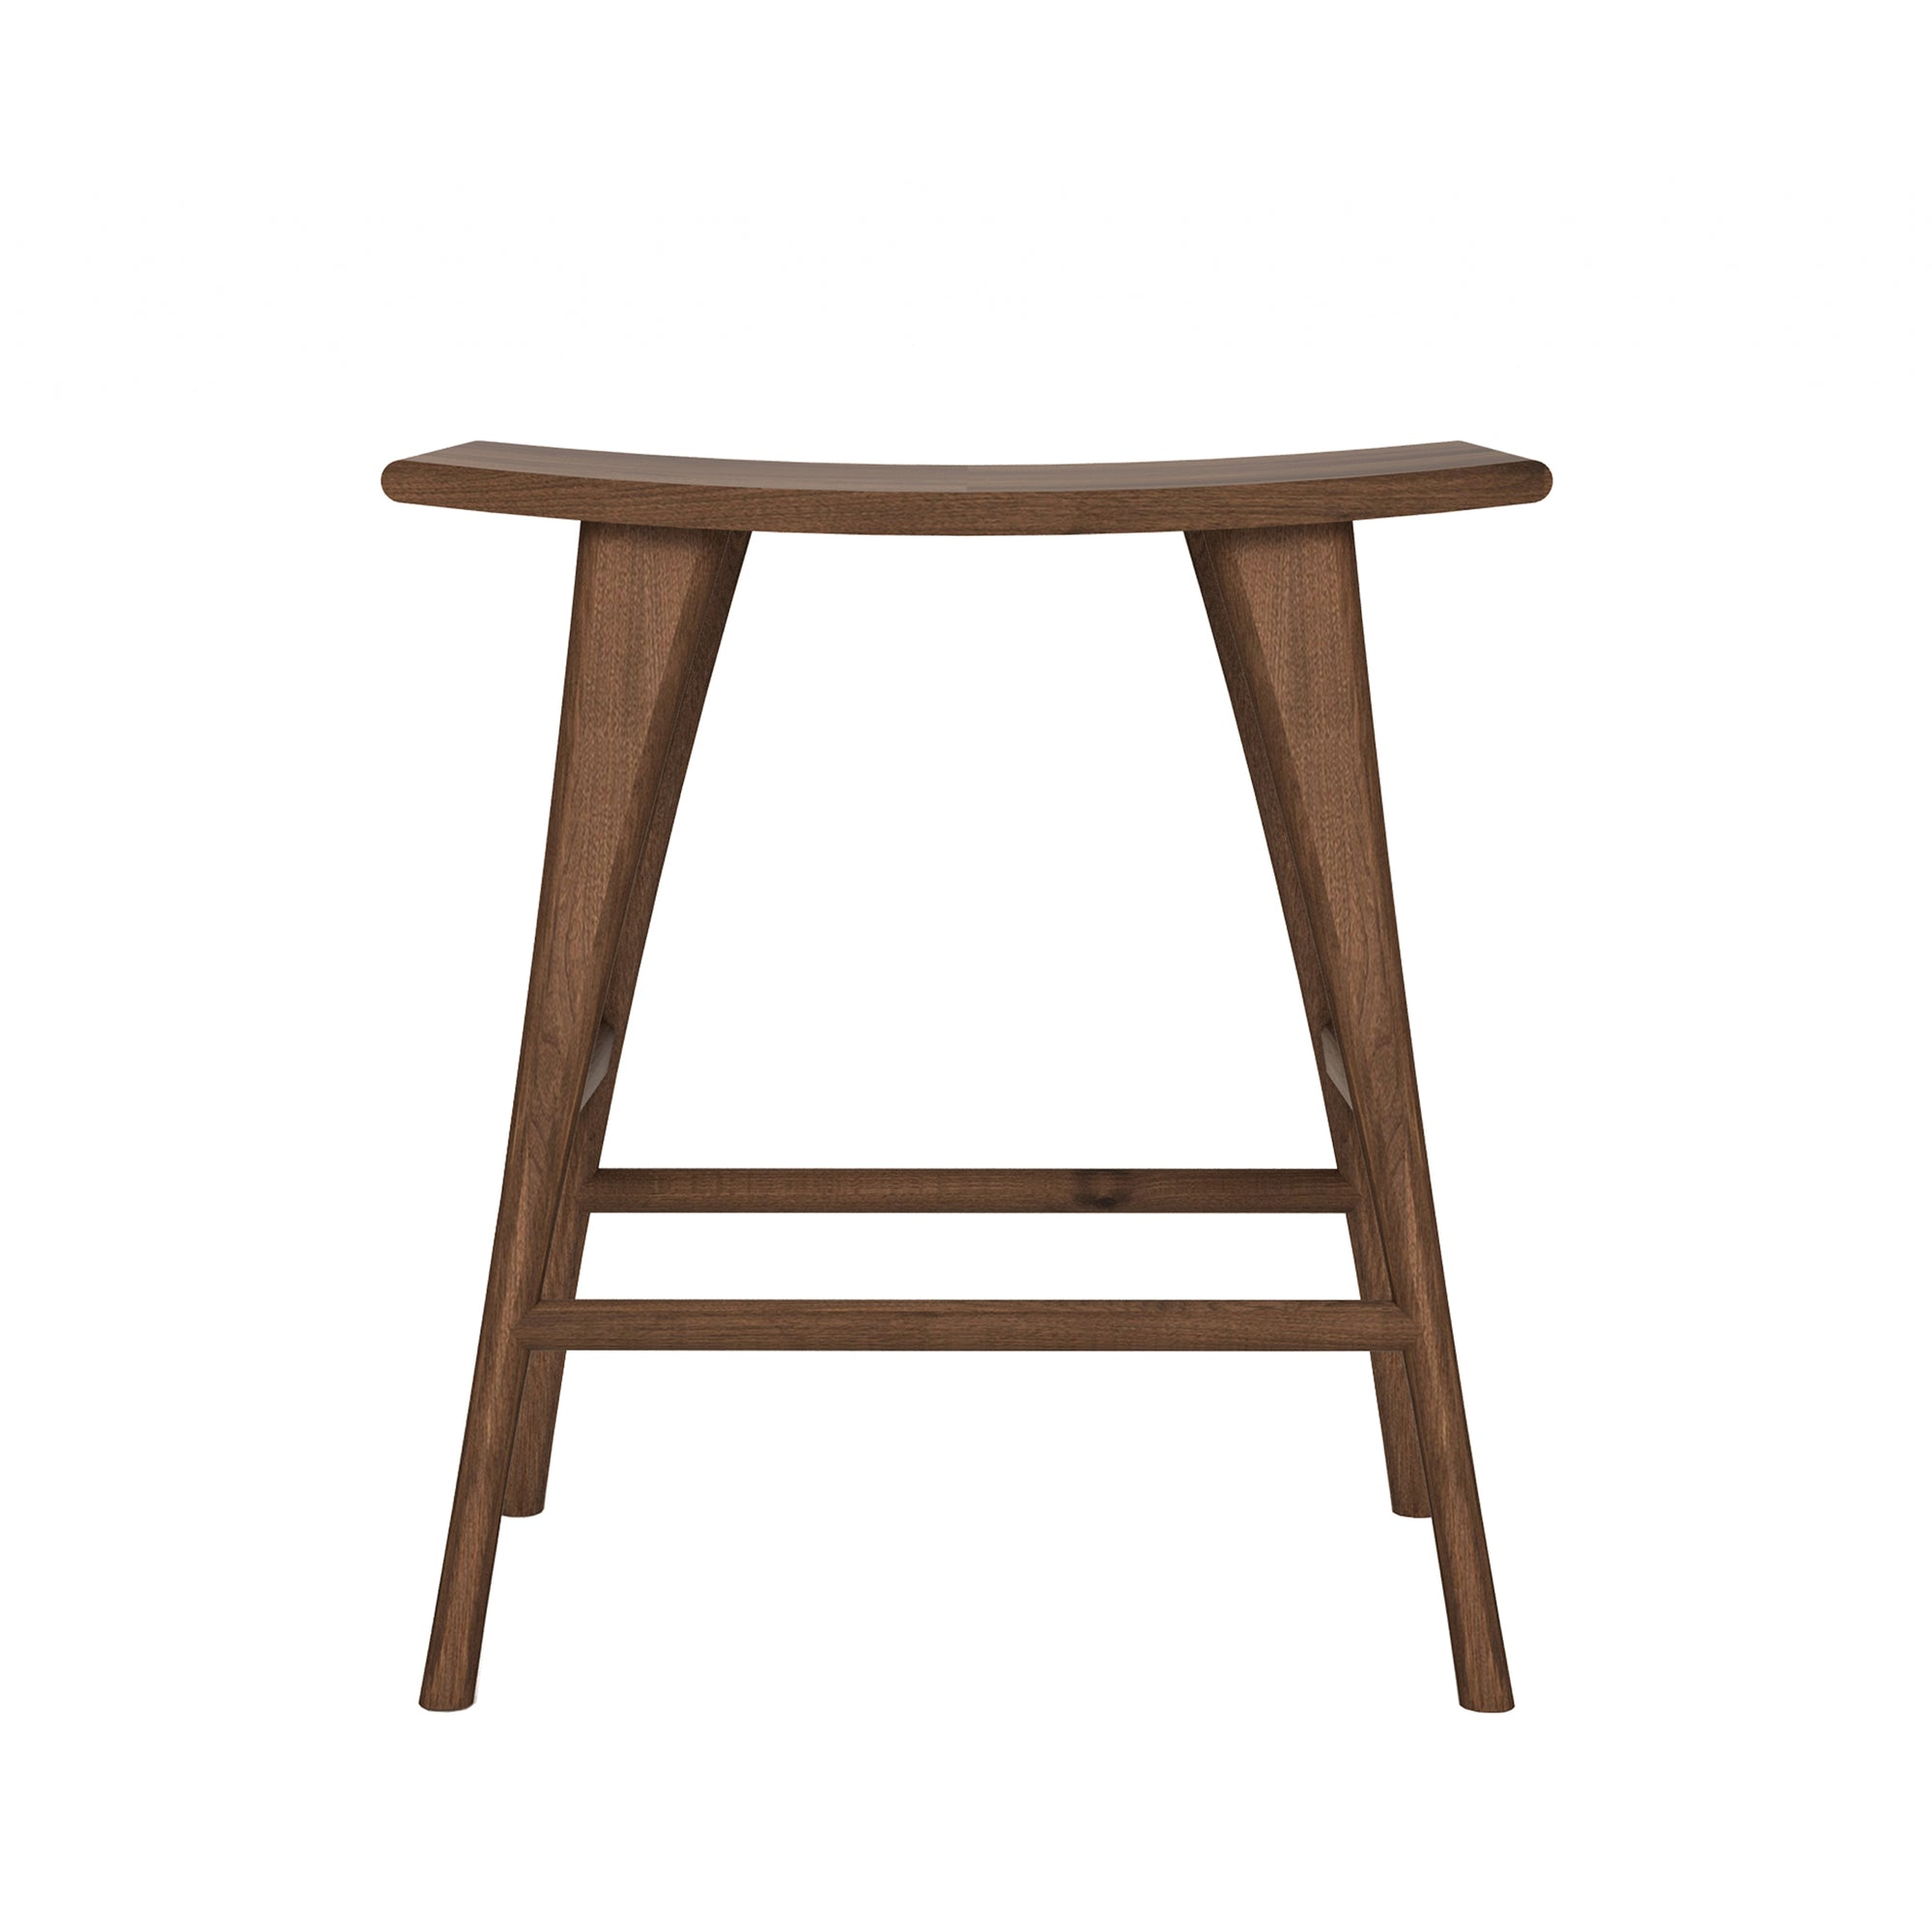 Walnut Osso counter stool